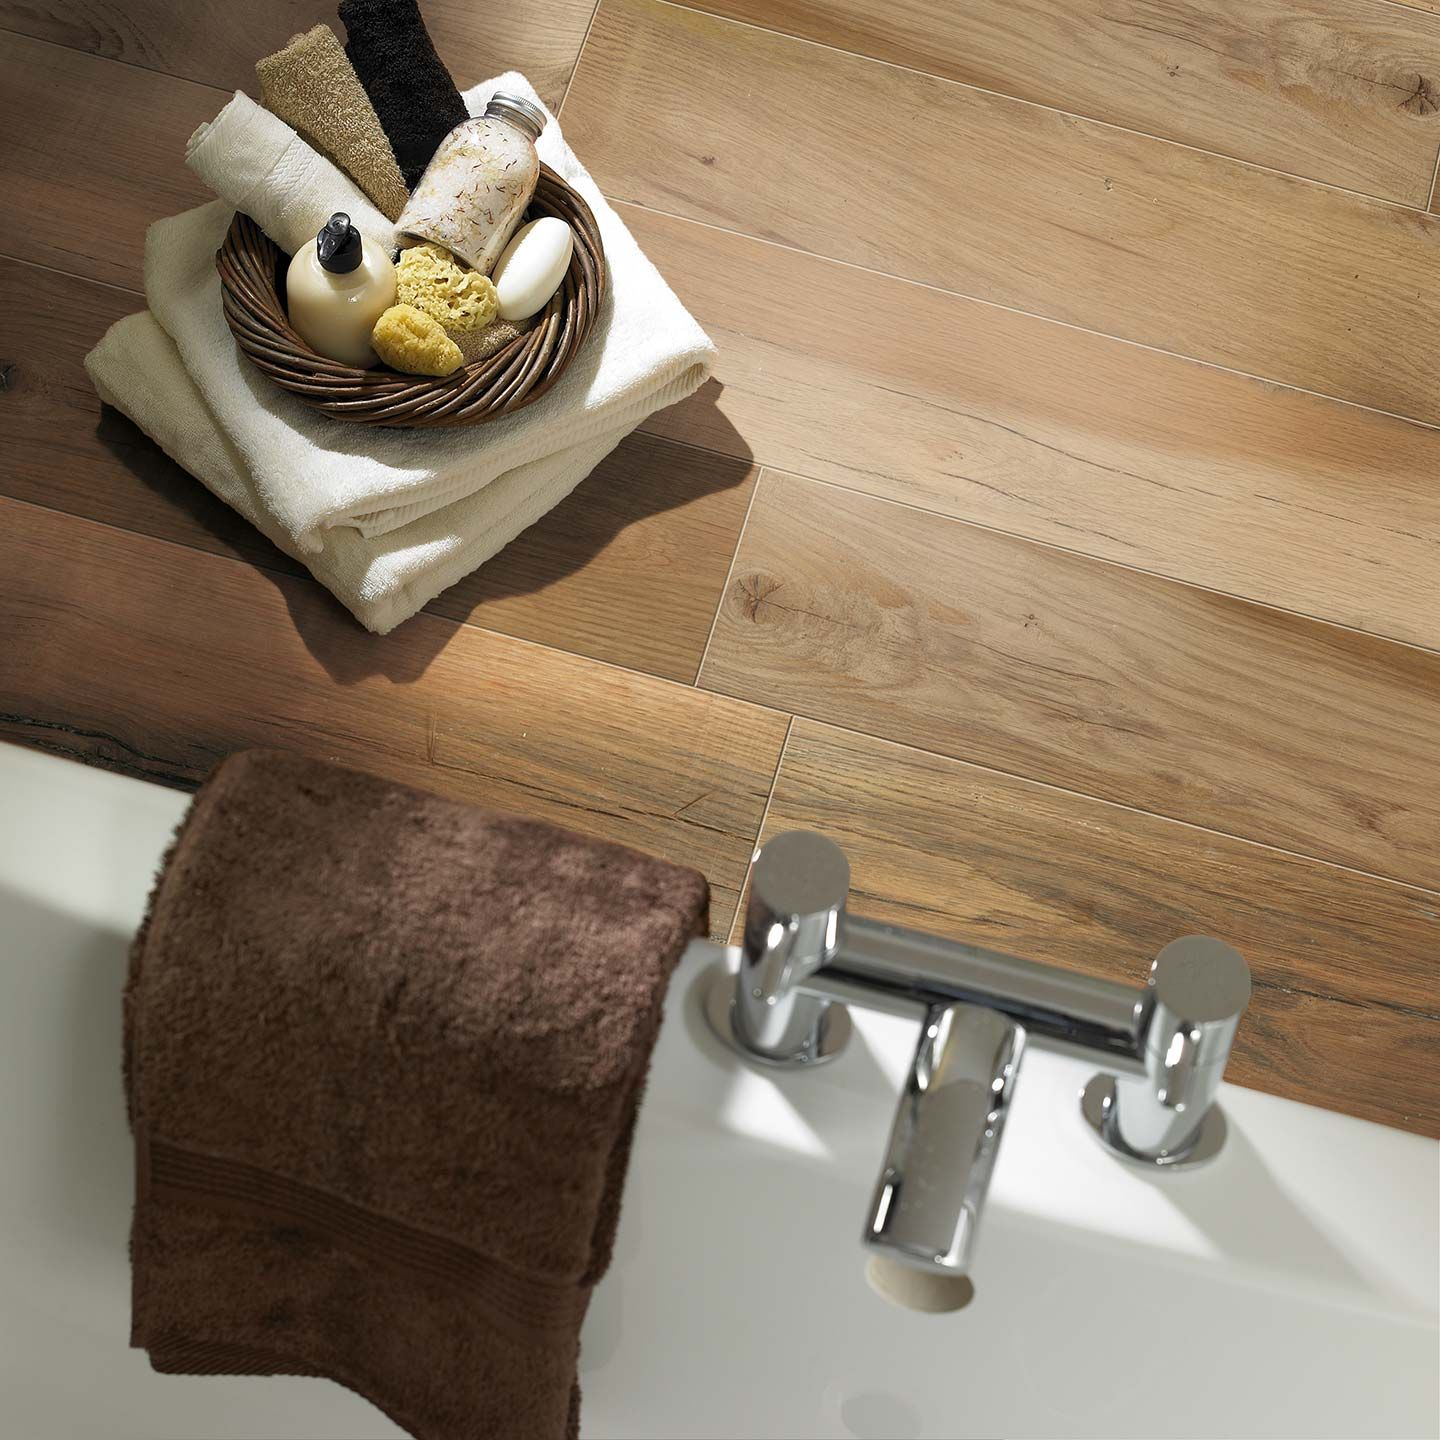 Florim pier wood look porcelain tile flooring in cocoa provides a florim pier wood look porcelain tile flooring in cocoa provides a warm blend of rustic and traditional wood look flooring with the benefits of porcelain dailygadgetfo Images